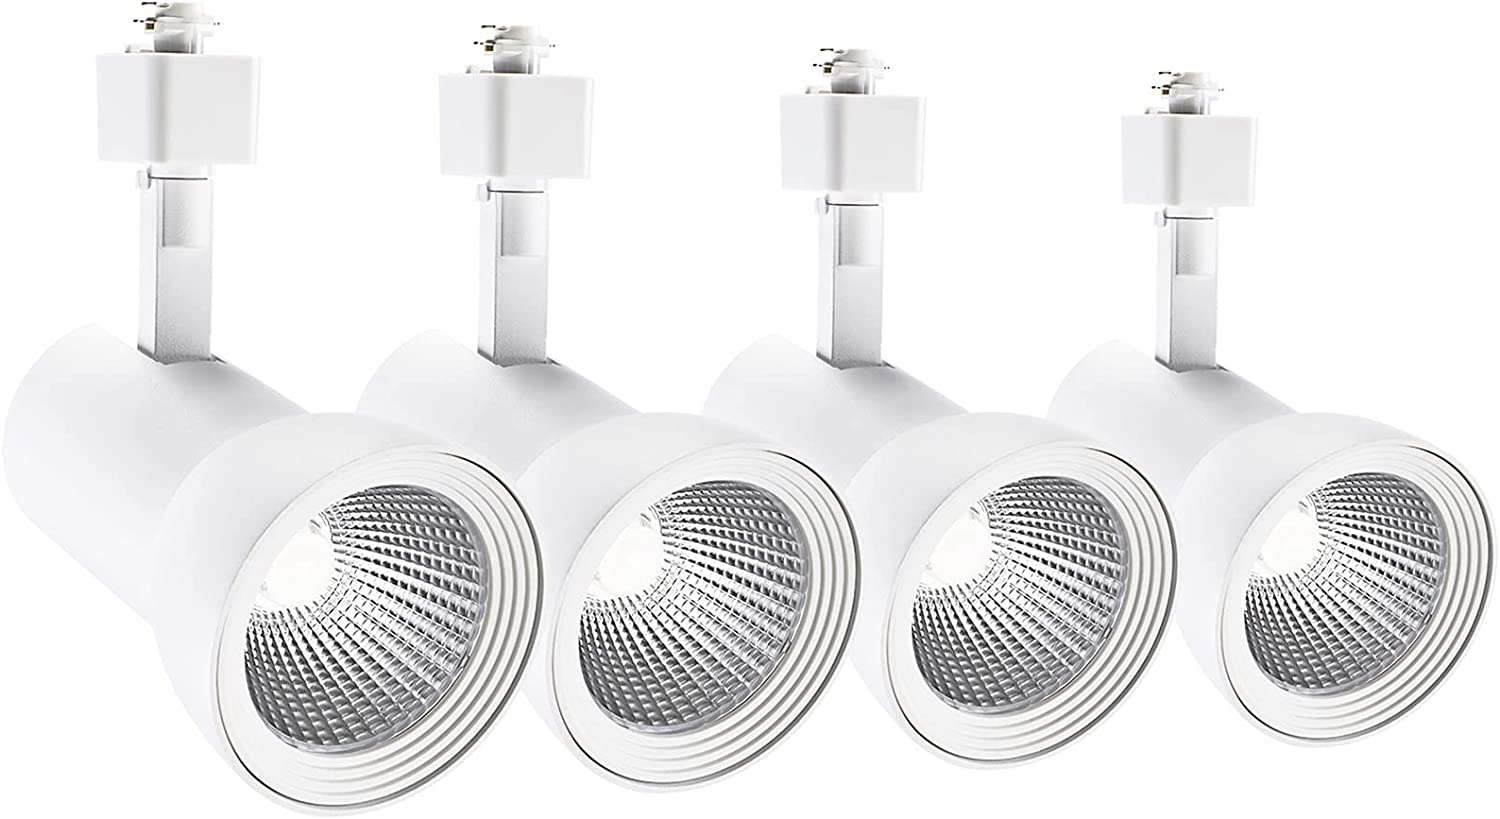 LEONLITE 18W Ranking TOP13 Dimmable LED Track Housing Aluminum Heads Lighting Now free shipping